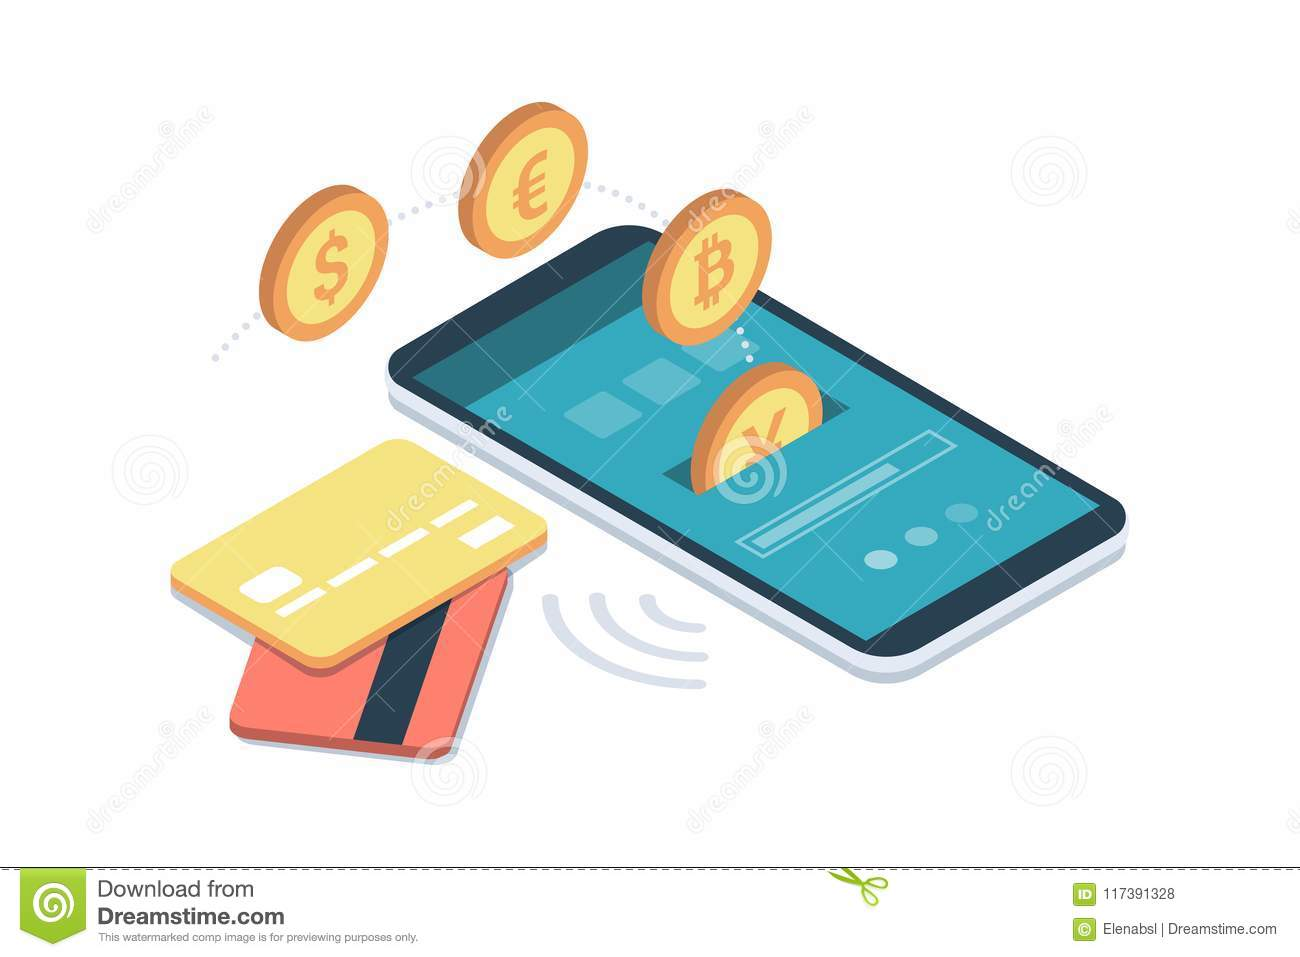 E-payment app on smartphone